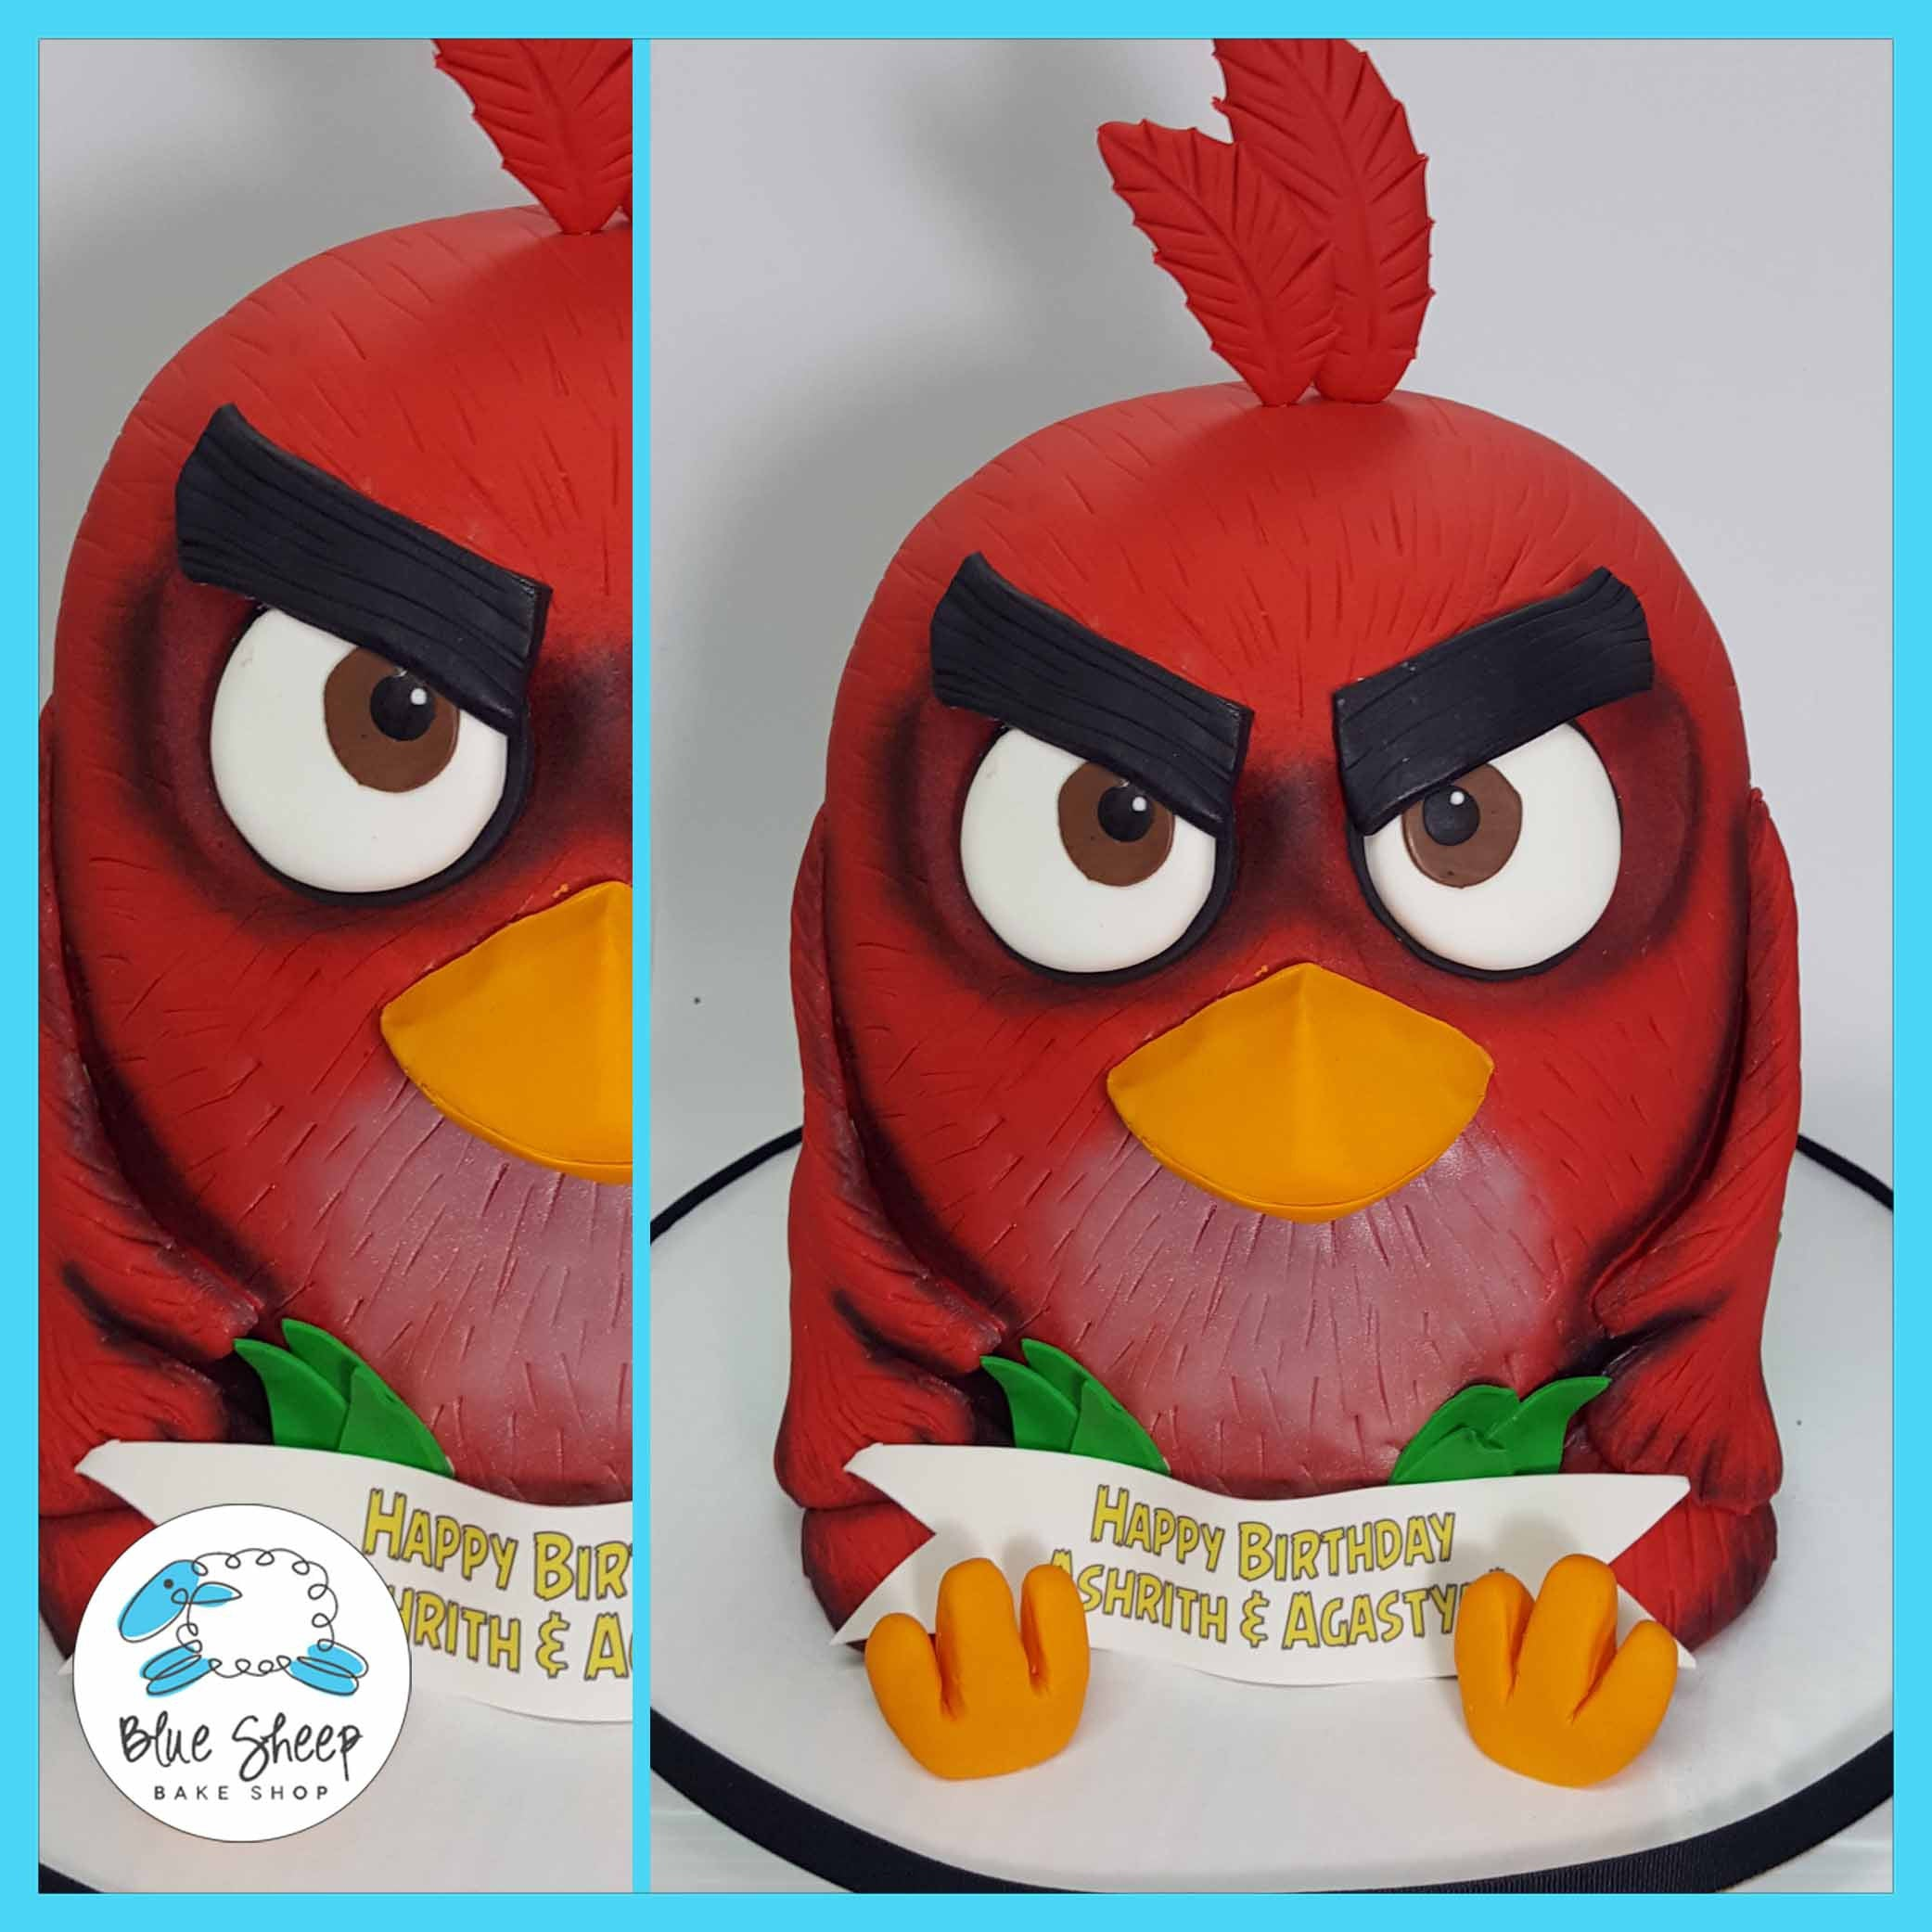 Prime Red Angry Birds Cake Blue Sheep Bake Shop Funny Birthday Cards Online Elaedamsfinfo